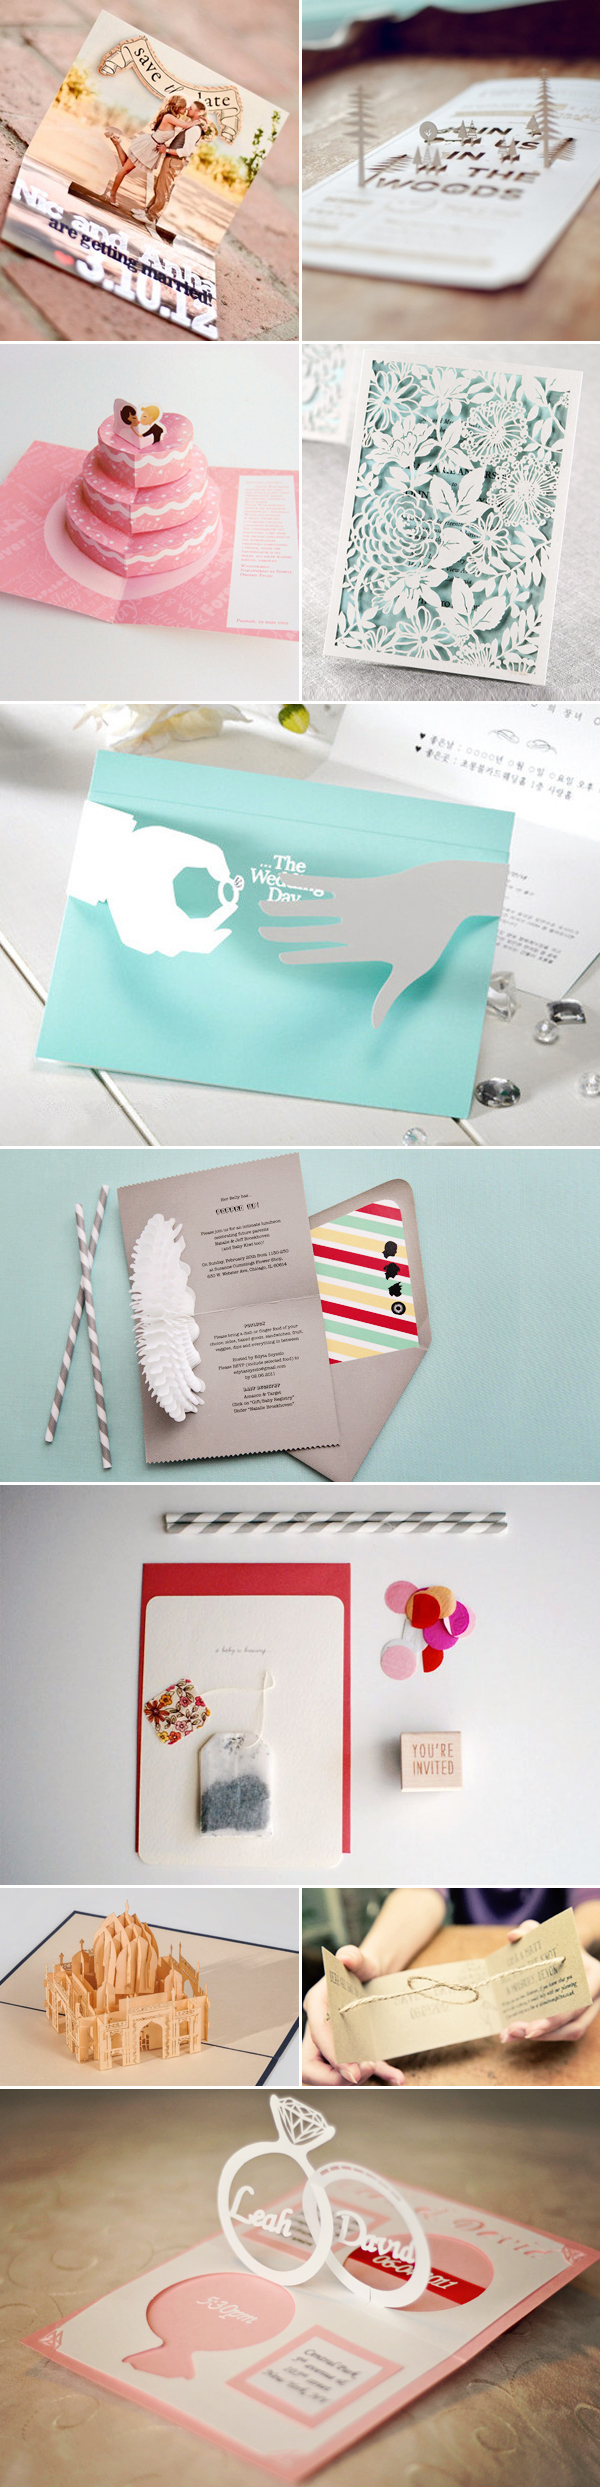 17 creative and fun 3d wedding invitation cards! - praise wedding, Wedding invitations